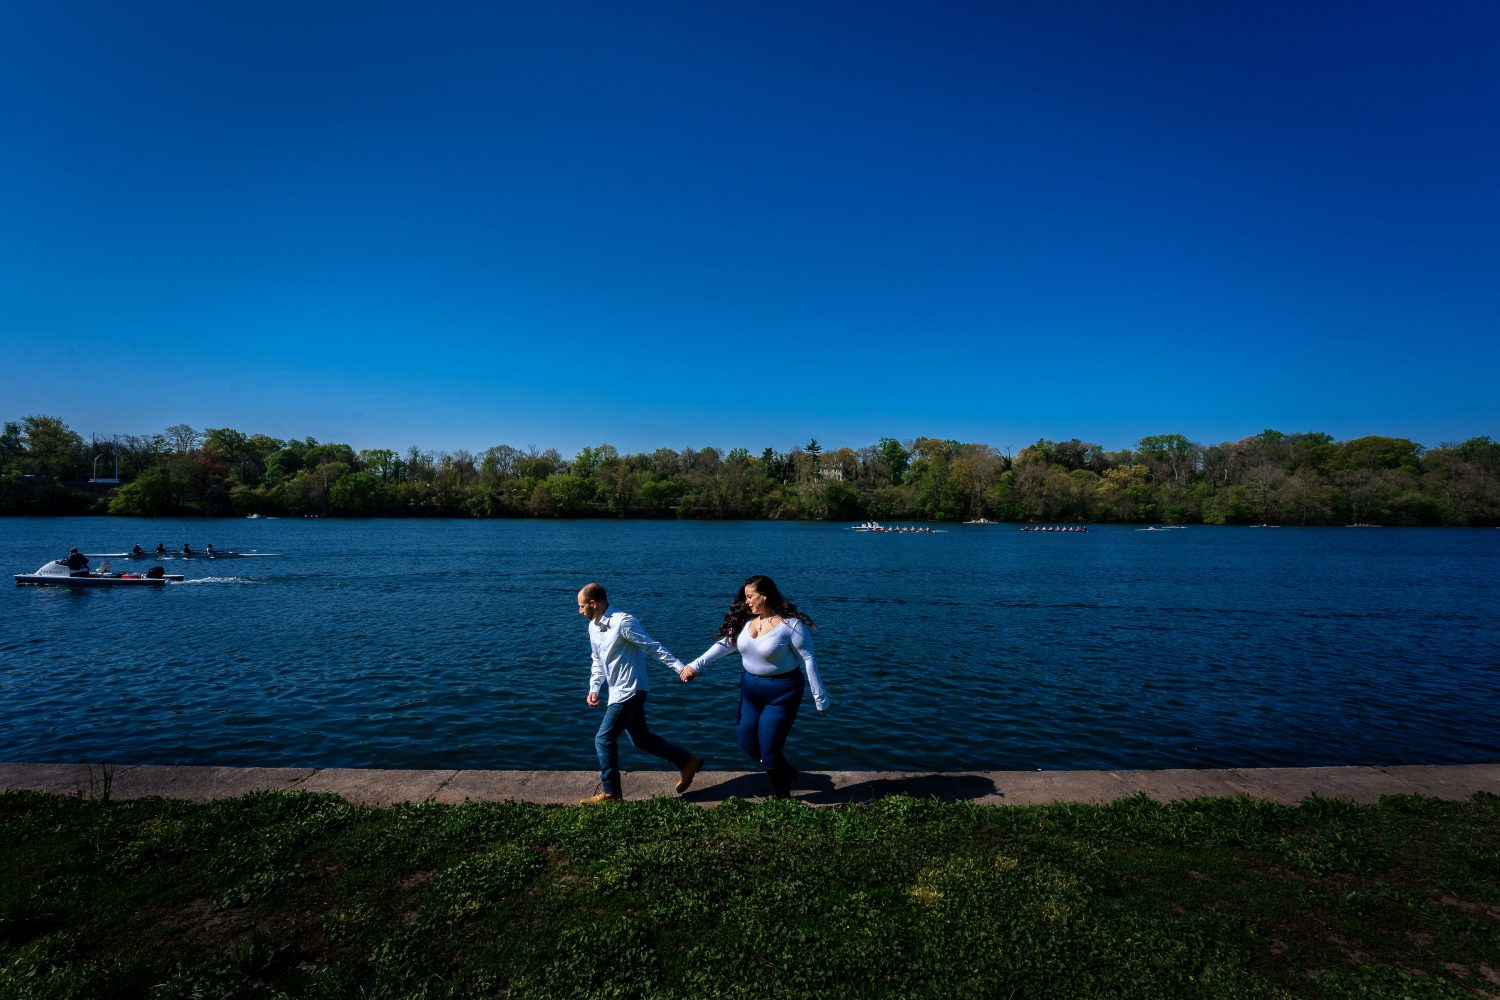 Couple walking near the pond